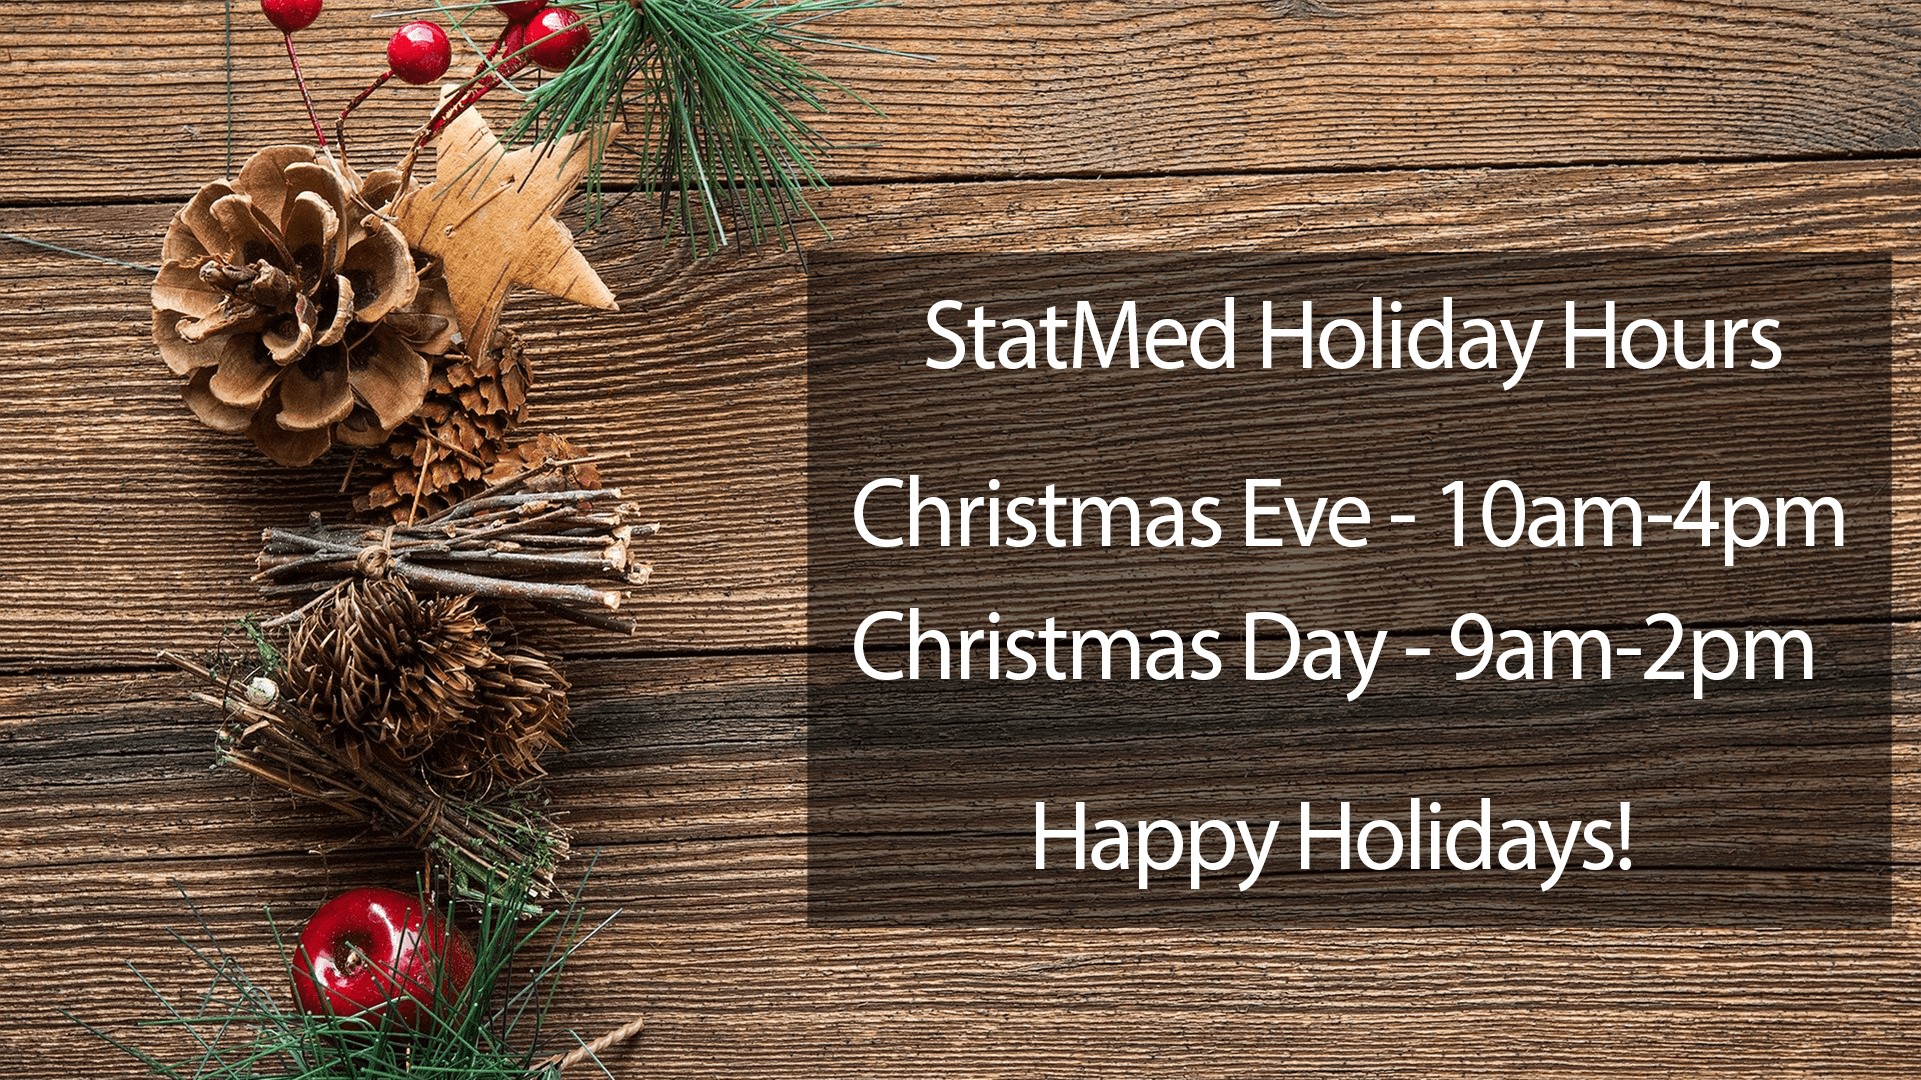 StatMed 2019 Christmas Hours